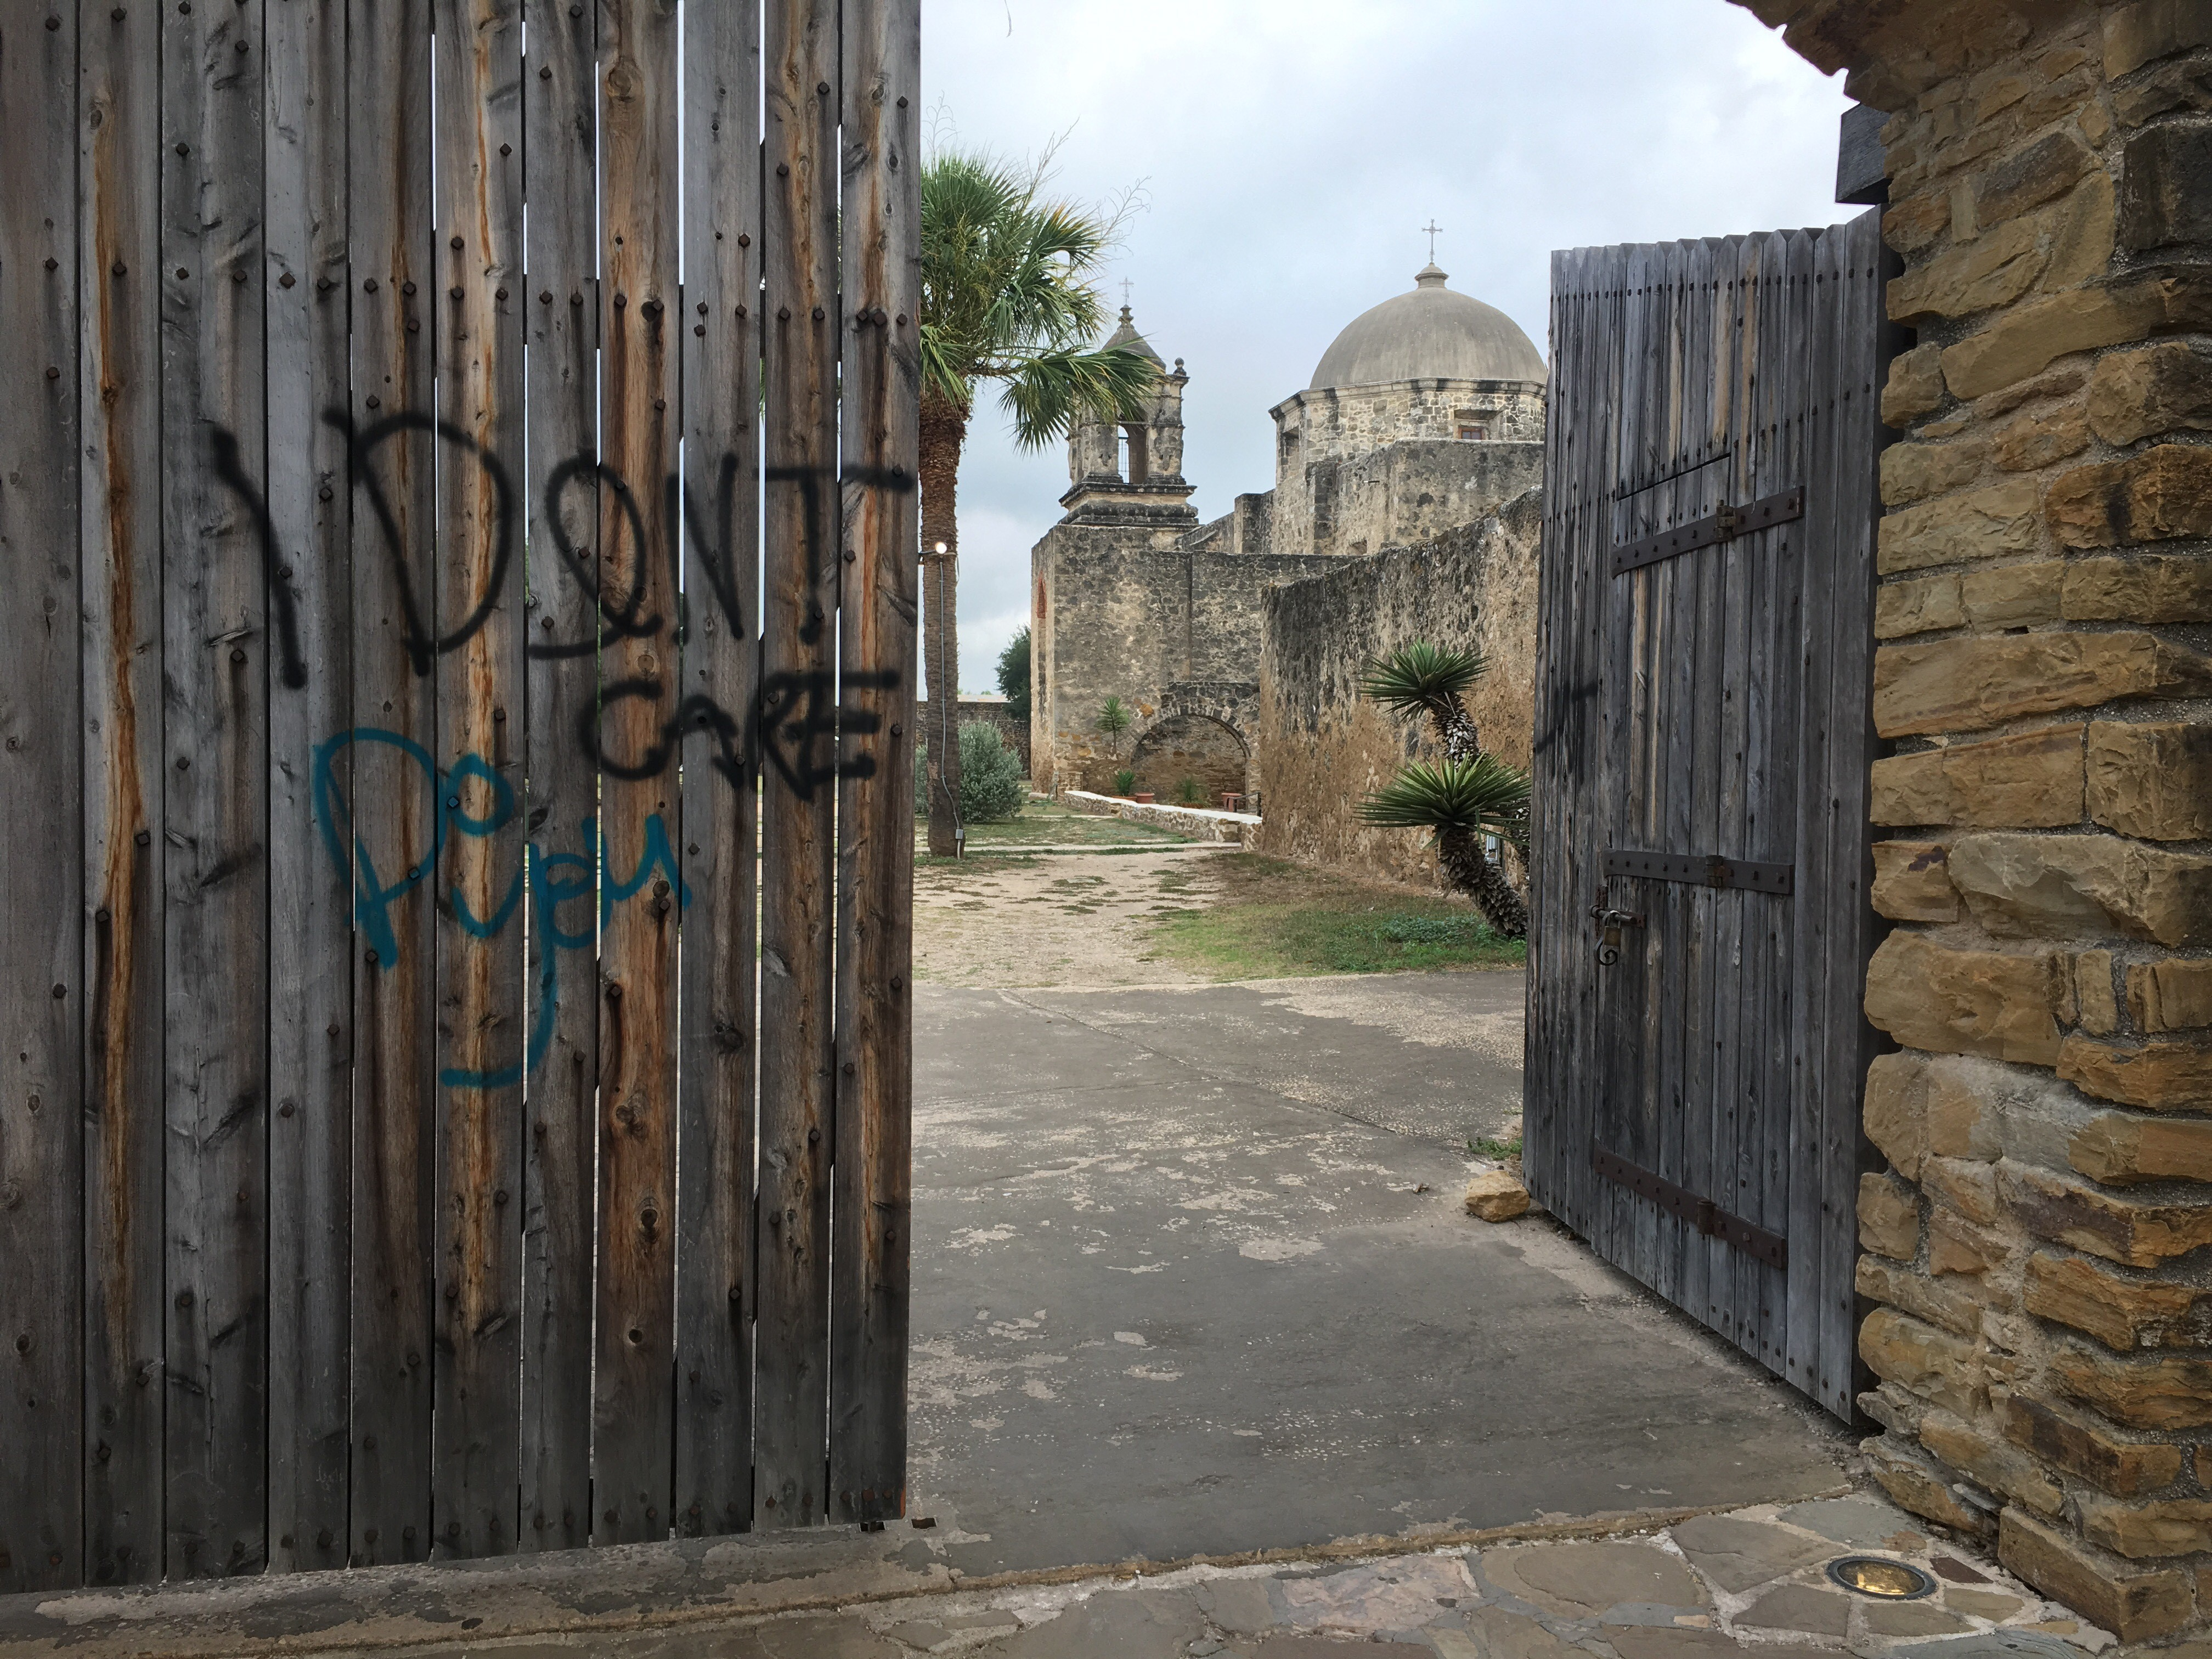 Vandals target Mission San Jose with 'I don't care' message on Friday, June 22, 2018. (Photo: Sinclair Broadcast Group)